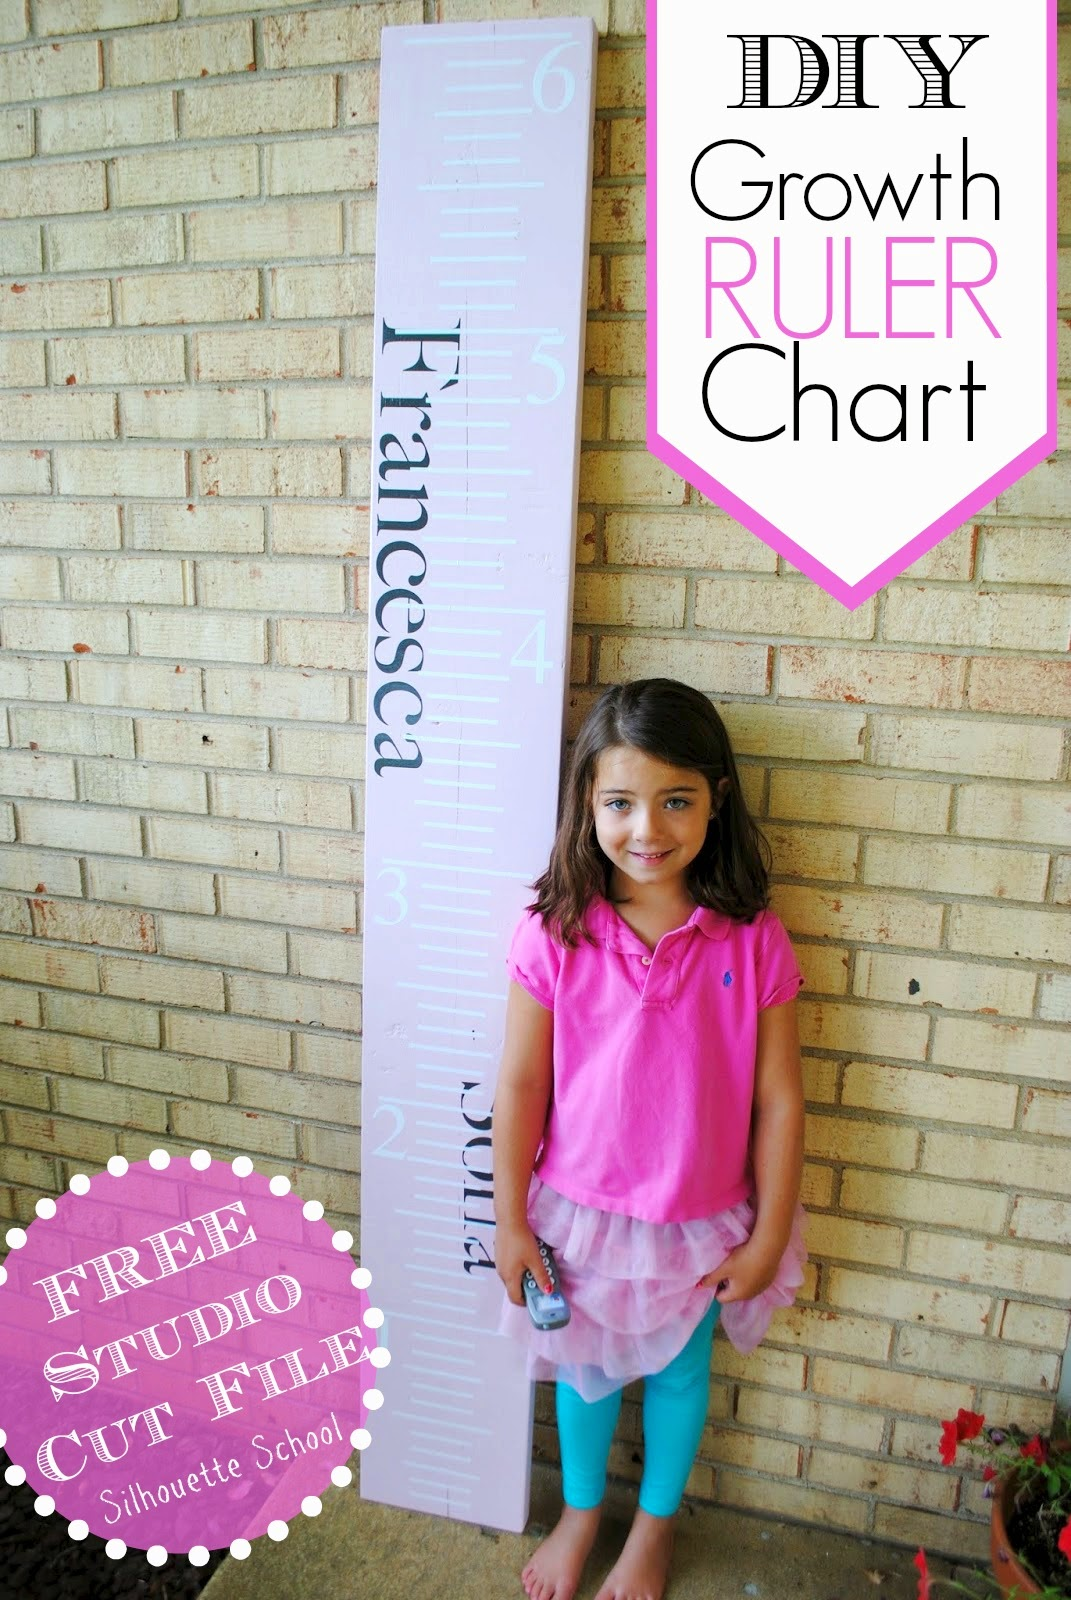 DIY, do it yourself, growth ruler chart, Silhouette tutorial, Silhouette Studio, free cut file